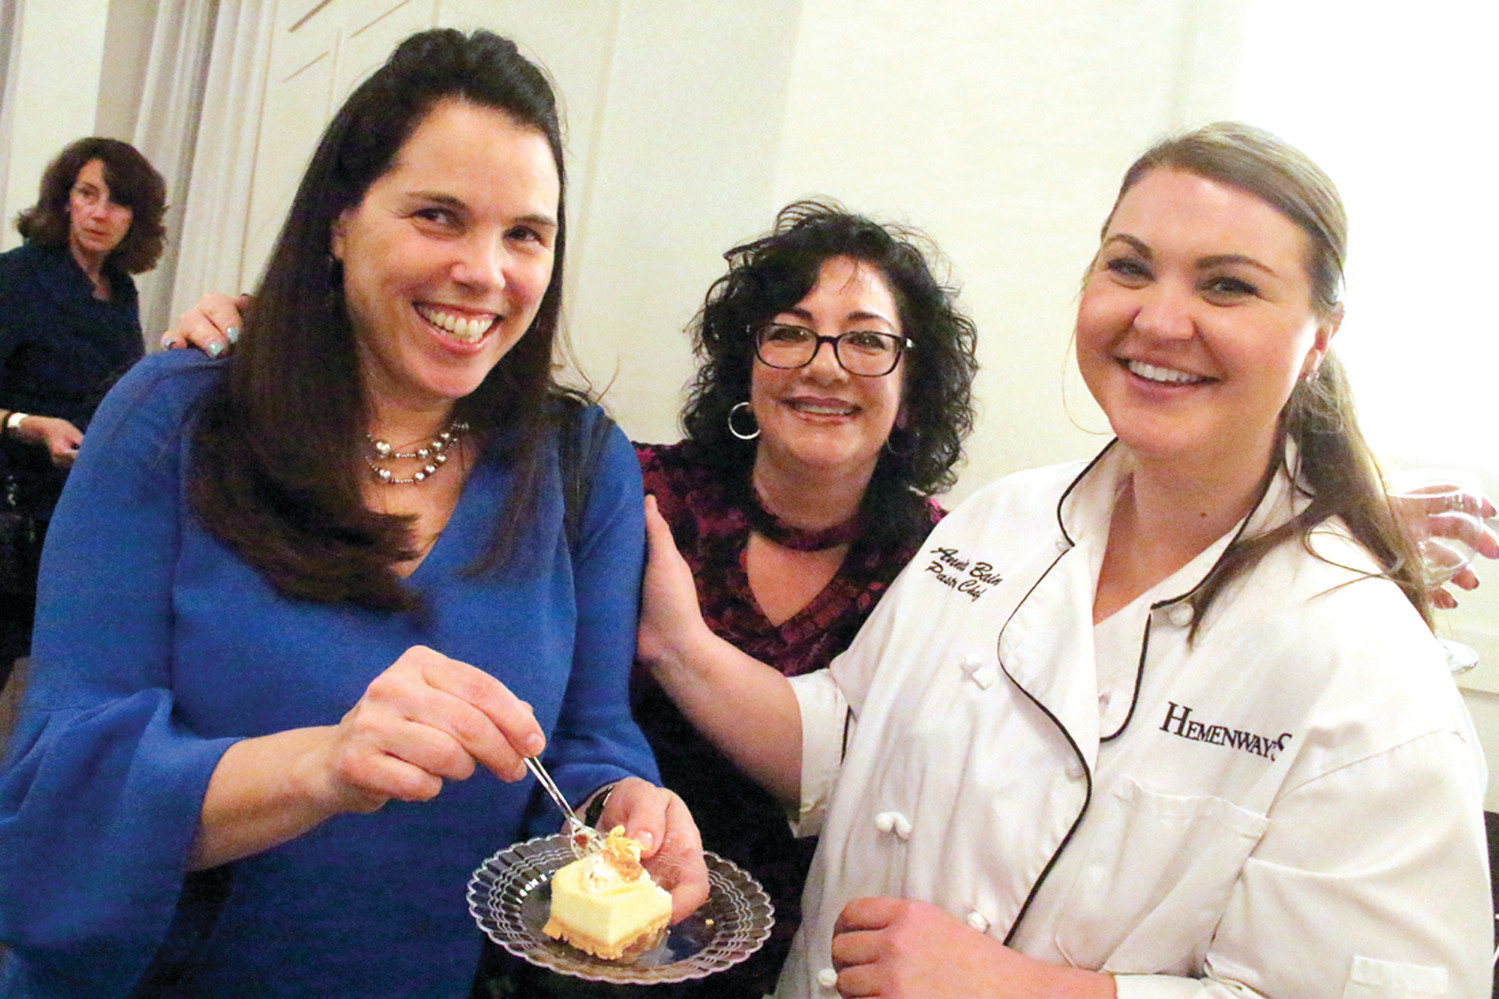 THE SAMPLER: Tempie Thompson and Carla Mannie are joined by Hemeny's pastry chef Annie Bain to share in bites of Bain's cheesecake with Girl Scout cookie crust.